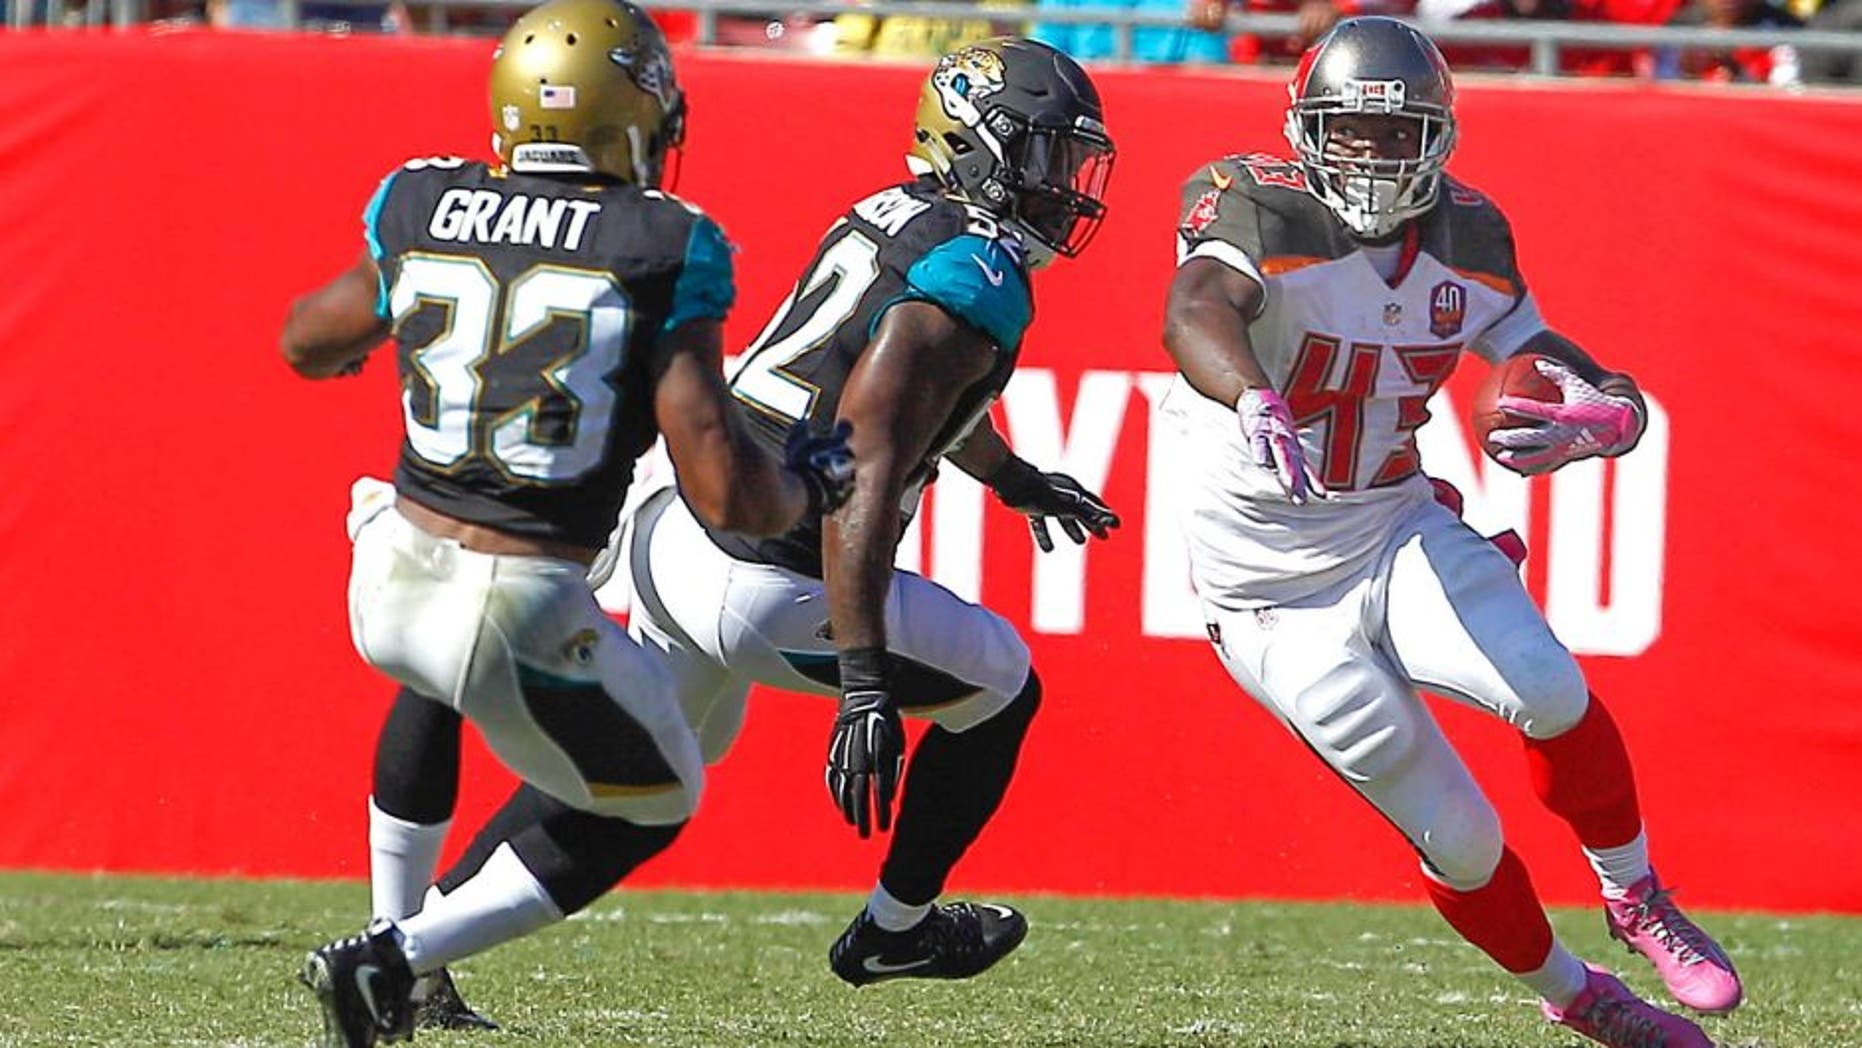 Oct 11, 2015; Tampa, FL, USA;Jacksonville Jaguars running back Corey Grant (33) and James Michael-Johnson (52) chase Tampa Bay Buccaneers running back Bobby Rainey (43) during the second half of an NFL football game at Raymond James Stadium. Tampa won 38-31. Mandatory Credit: Reinhold Matay-USA TODAY Sports